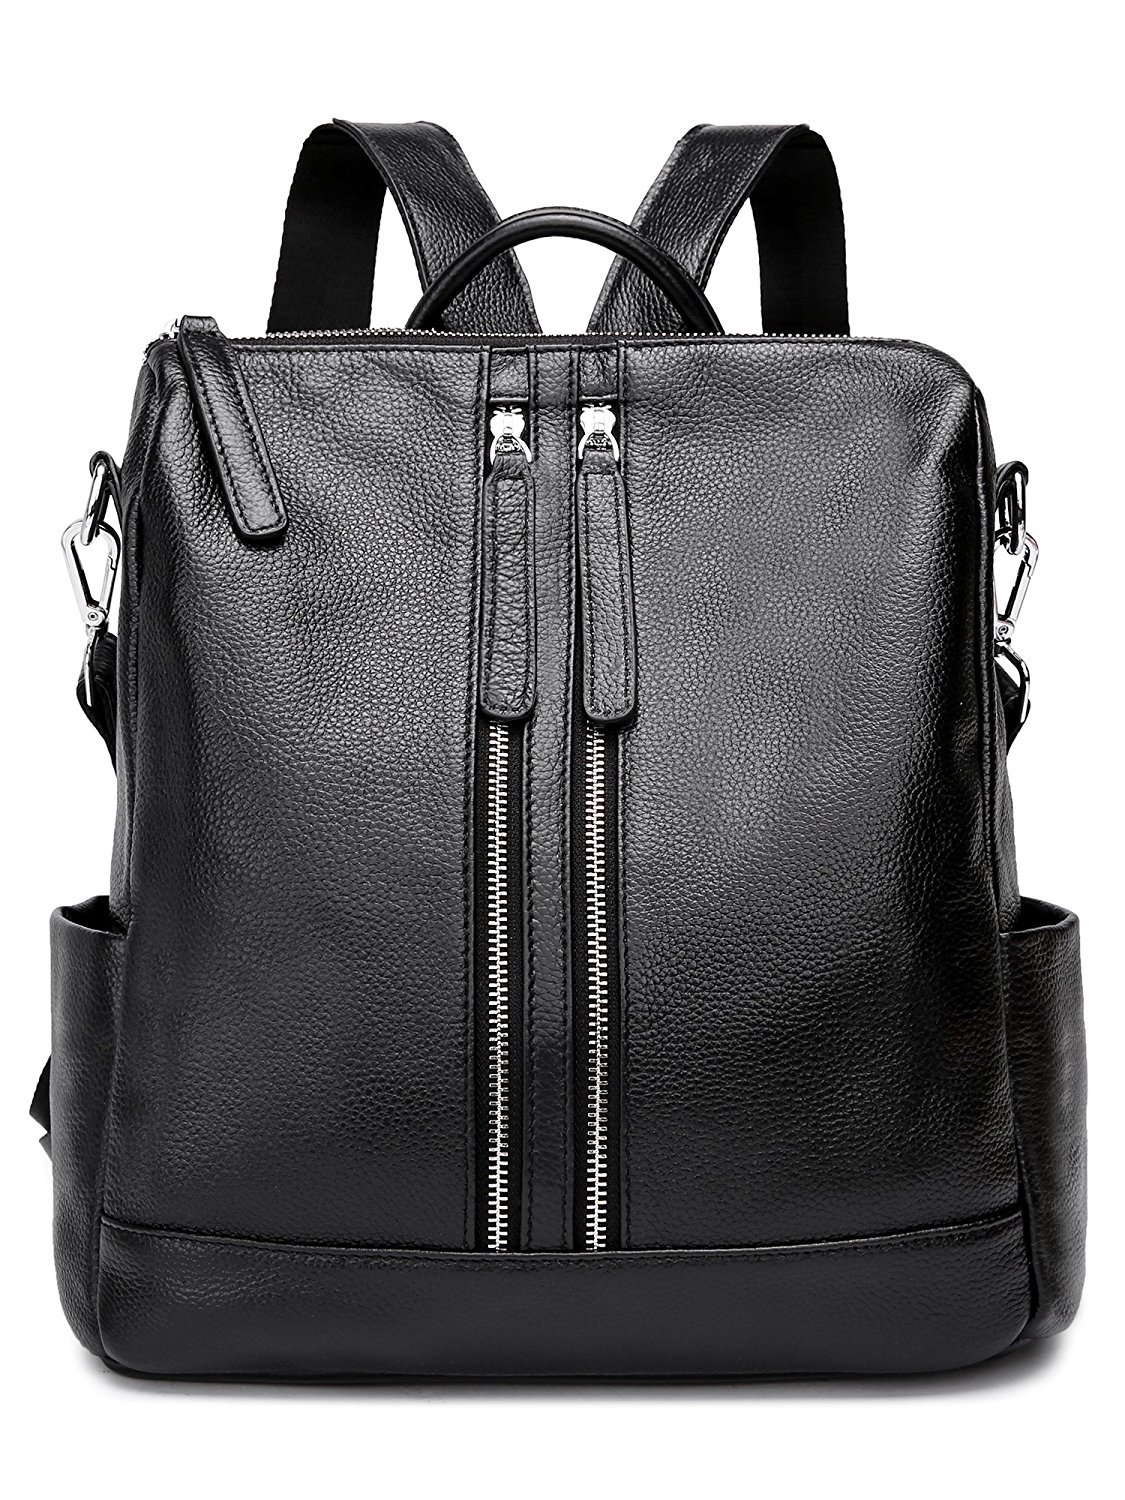 TECOOL Casual Backpack for Women, Genuine Leather Fashion Multi-pockets Shoulder bag Outdoor Leisure City Rucksack for Girls,Ladies - Black